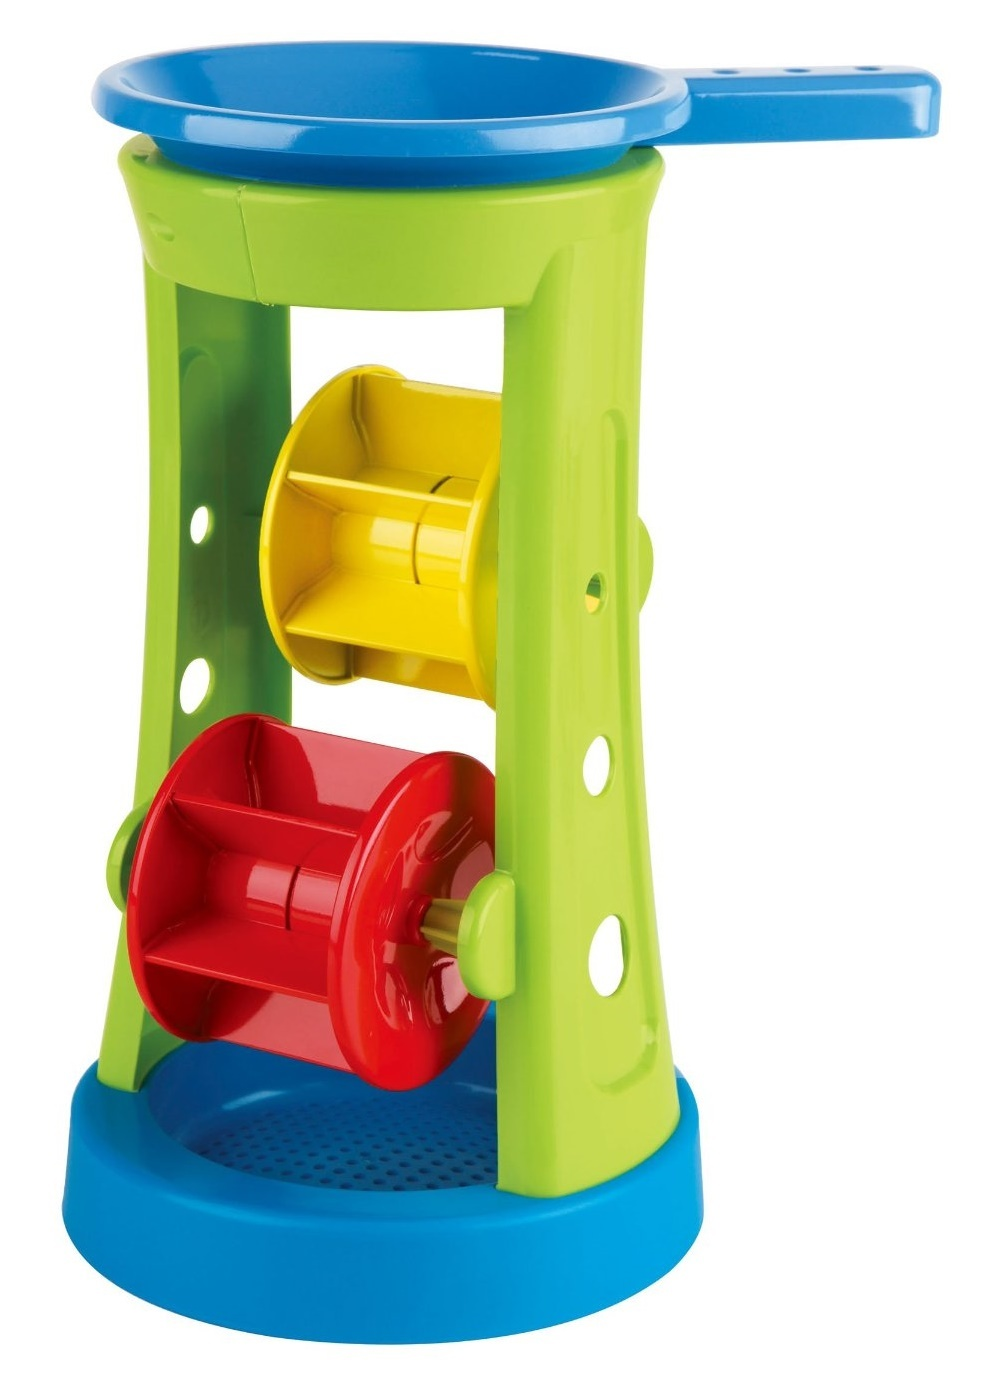 Hape: Double Sand & Water Wheel - Beach Toy image